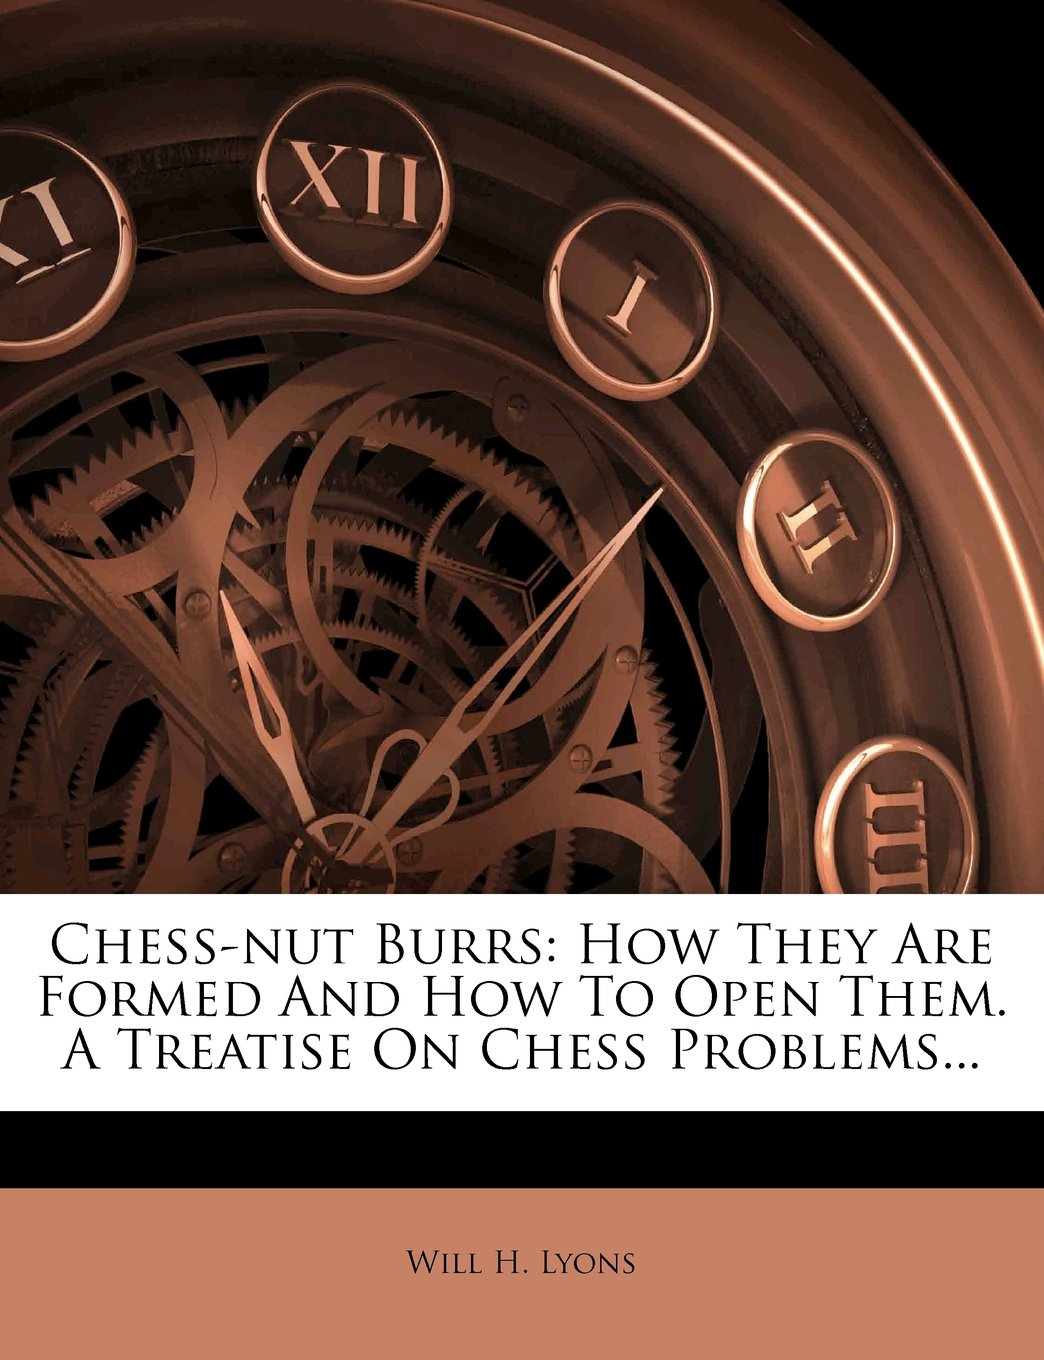 Chess-nut Burrs: How They Are Formed And How To Open Them. A Treatise On Chess Problems... (Japanese Edition) ebook